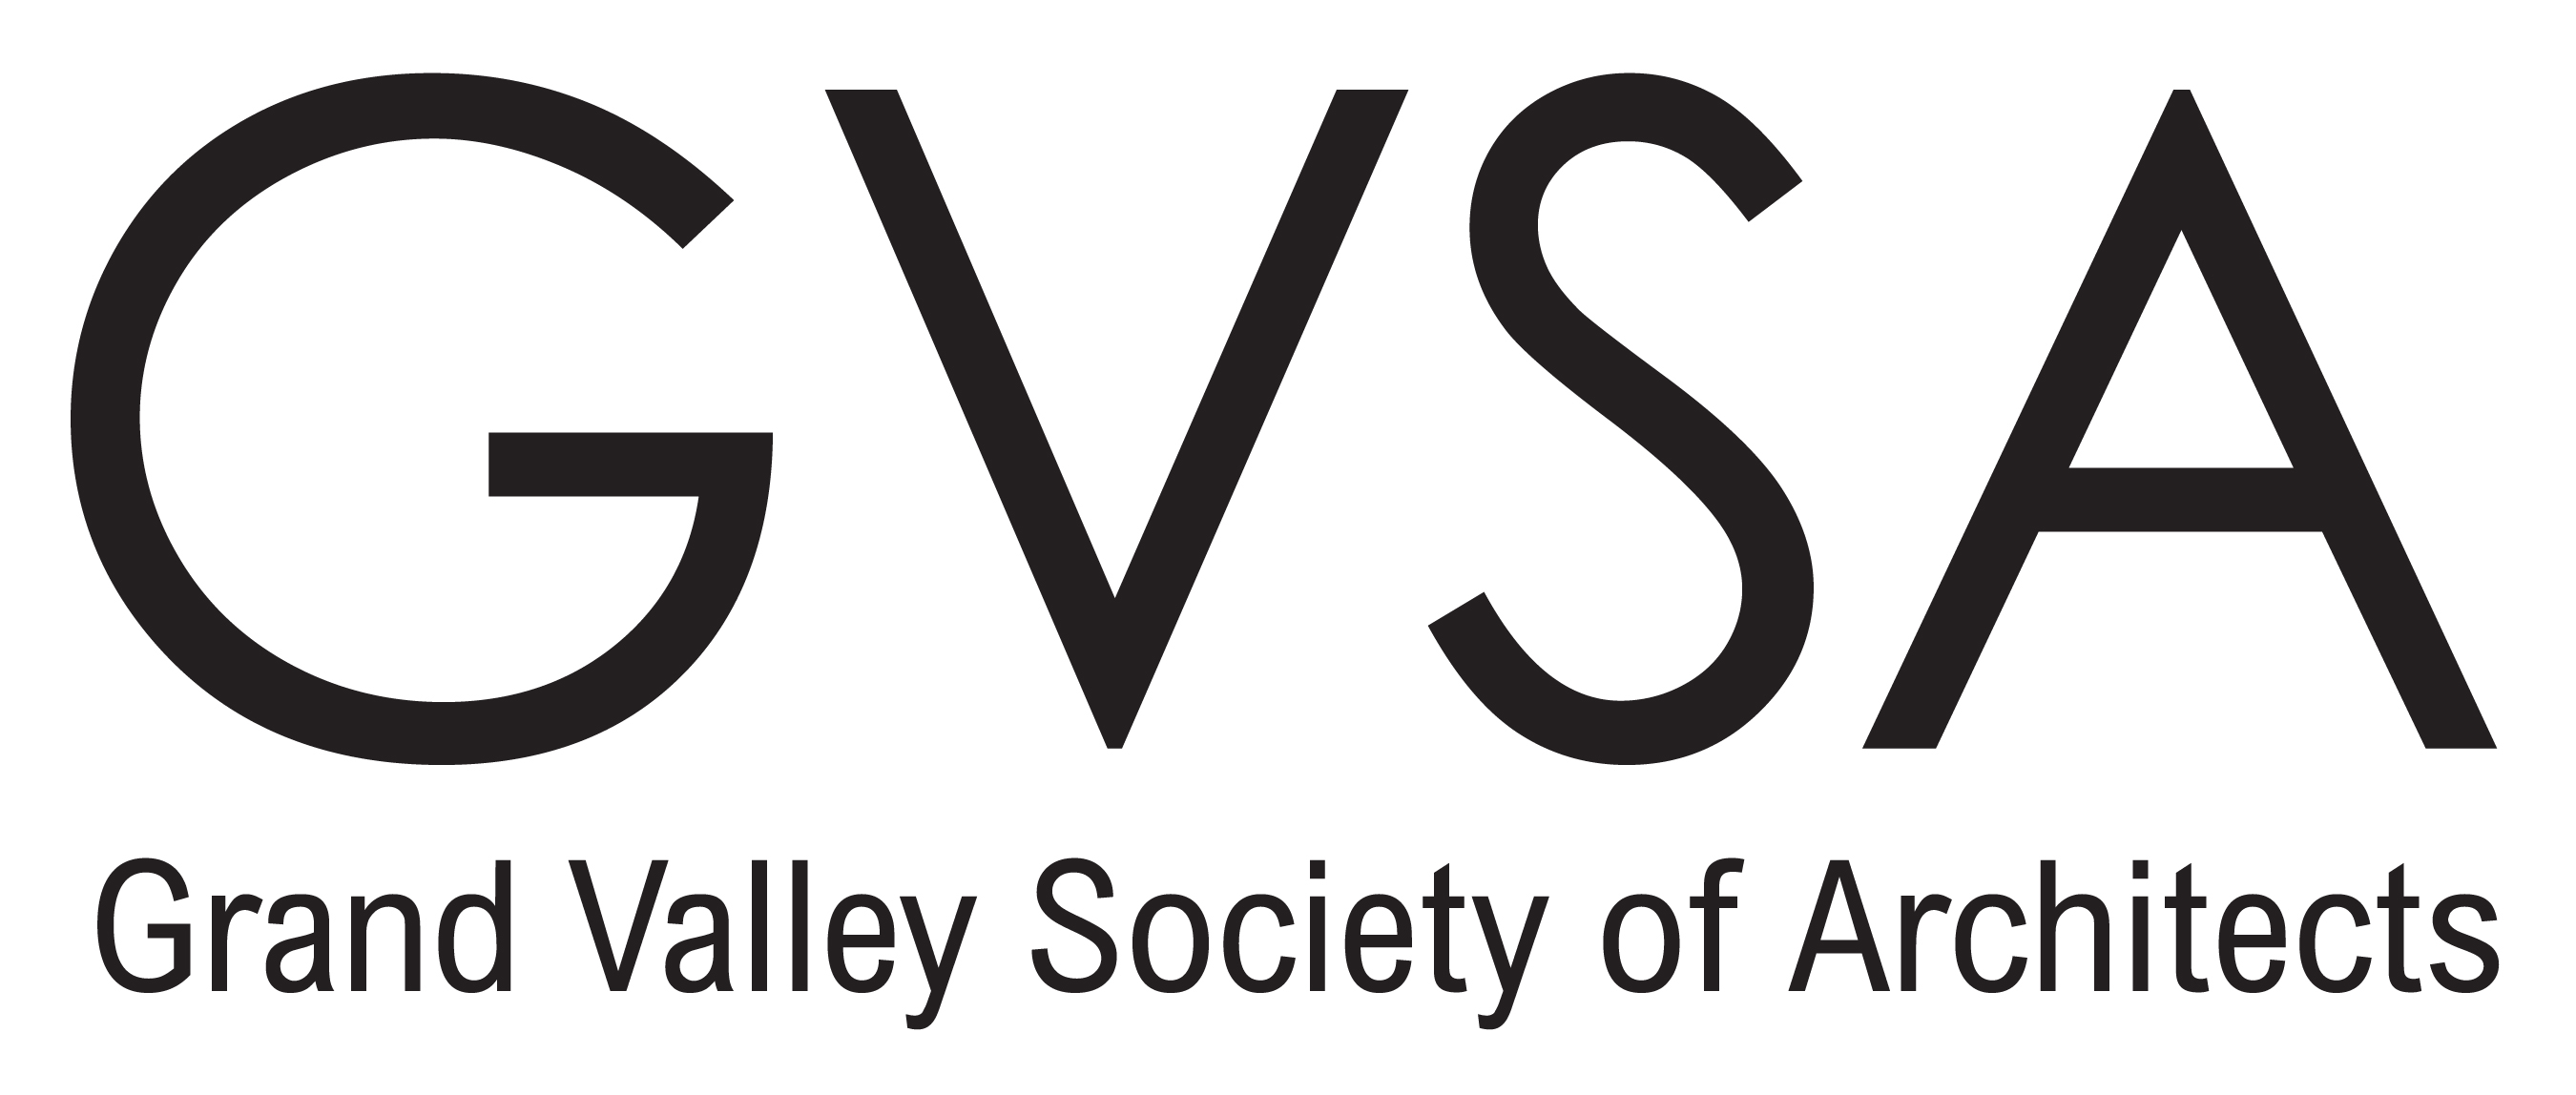 Grand Valley Society of Architects logo